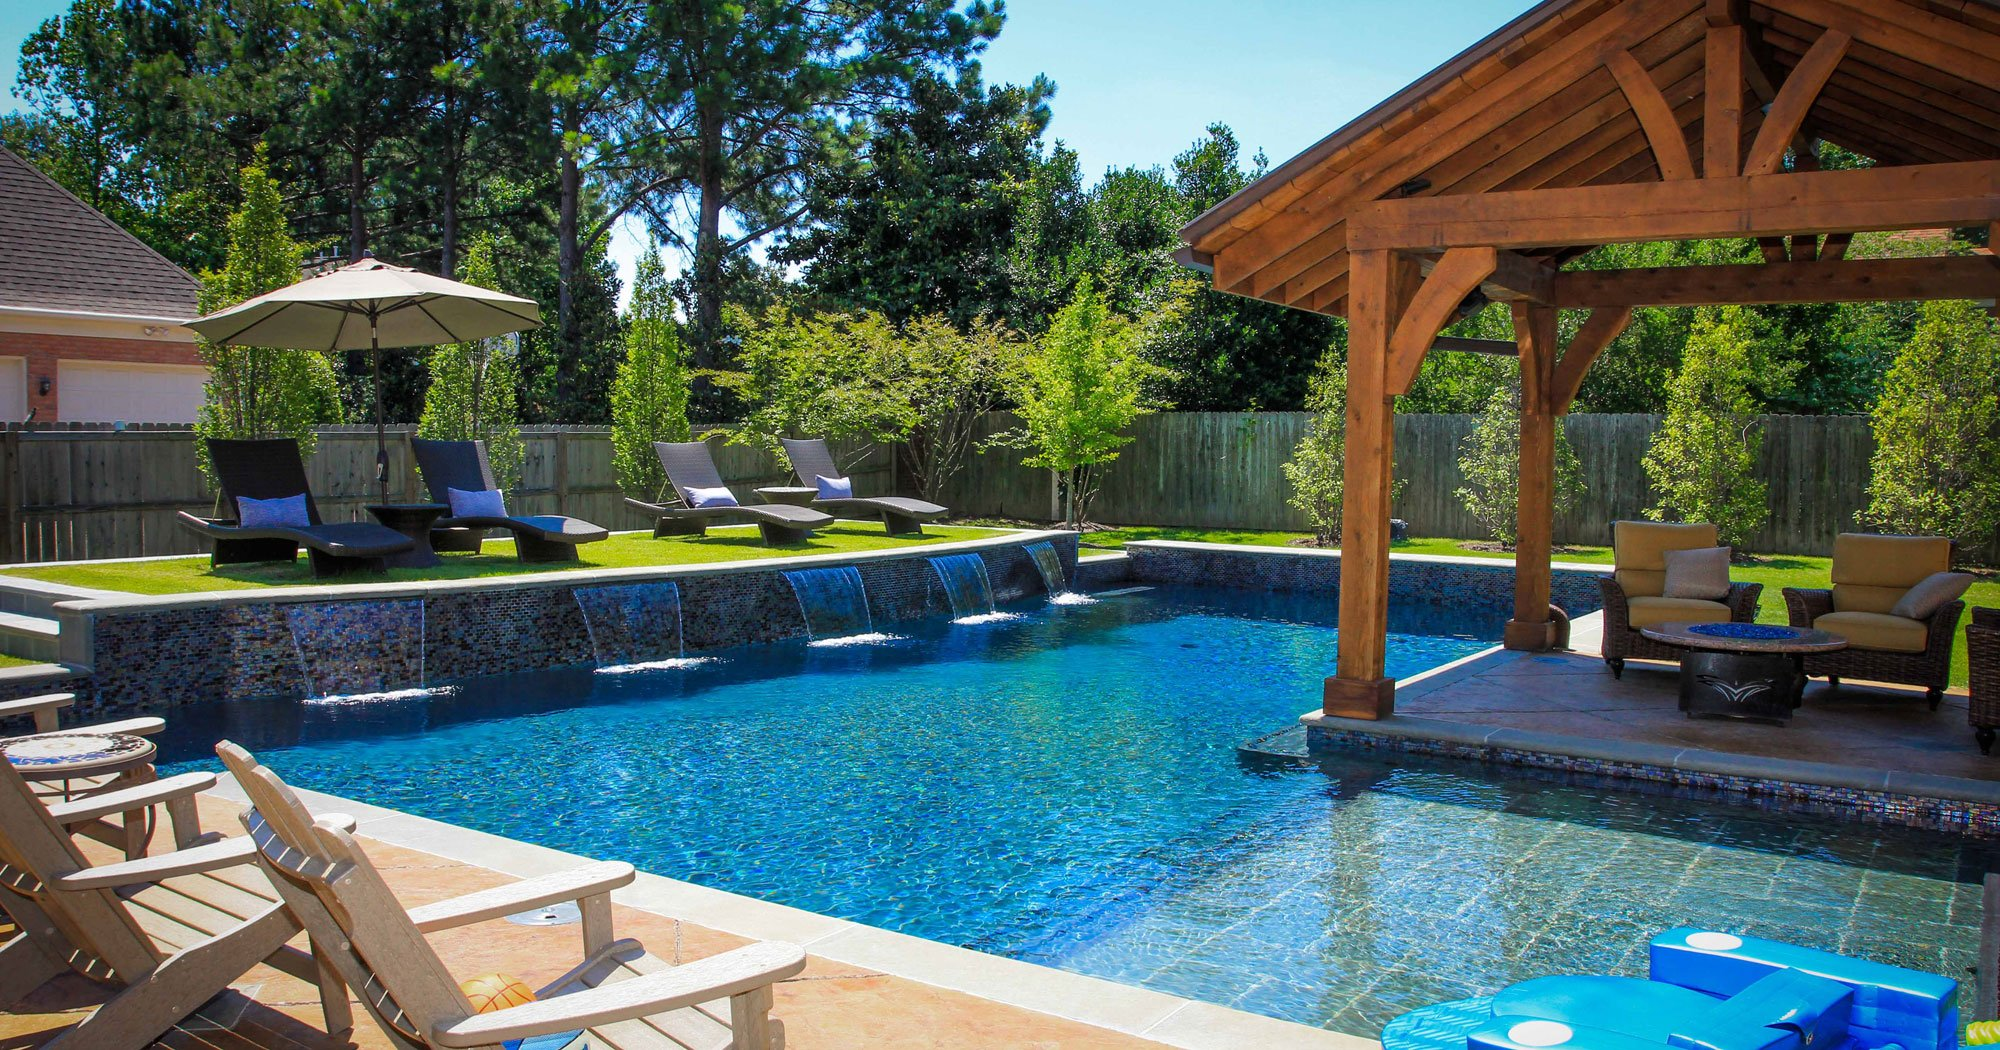 20 Backyard Pool Ideas for the Wealthy Homeowner on Cute Small Backyard Ideas  id=14271